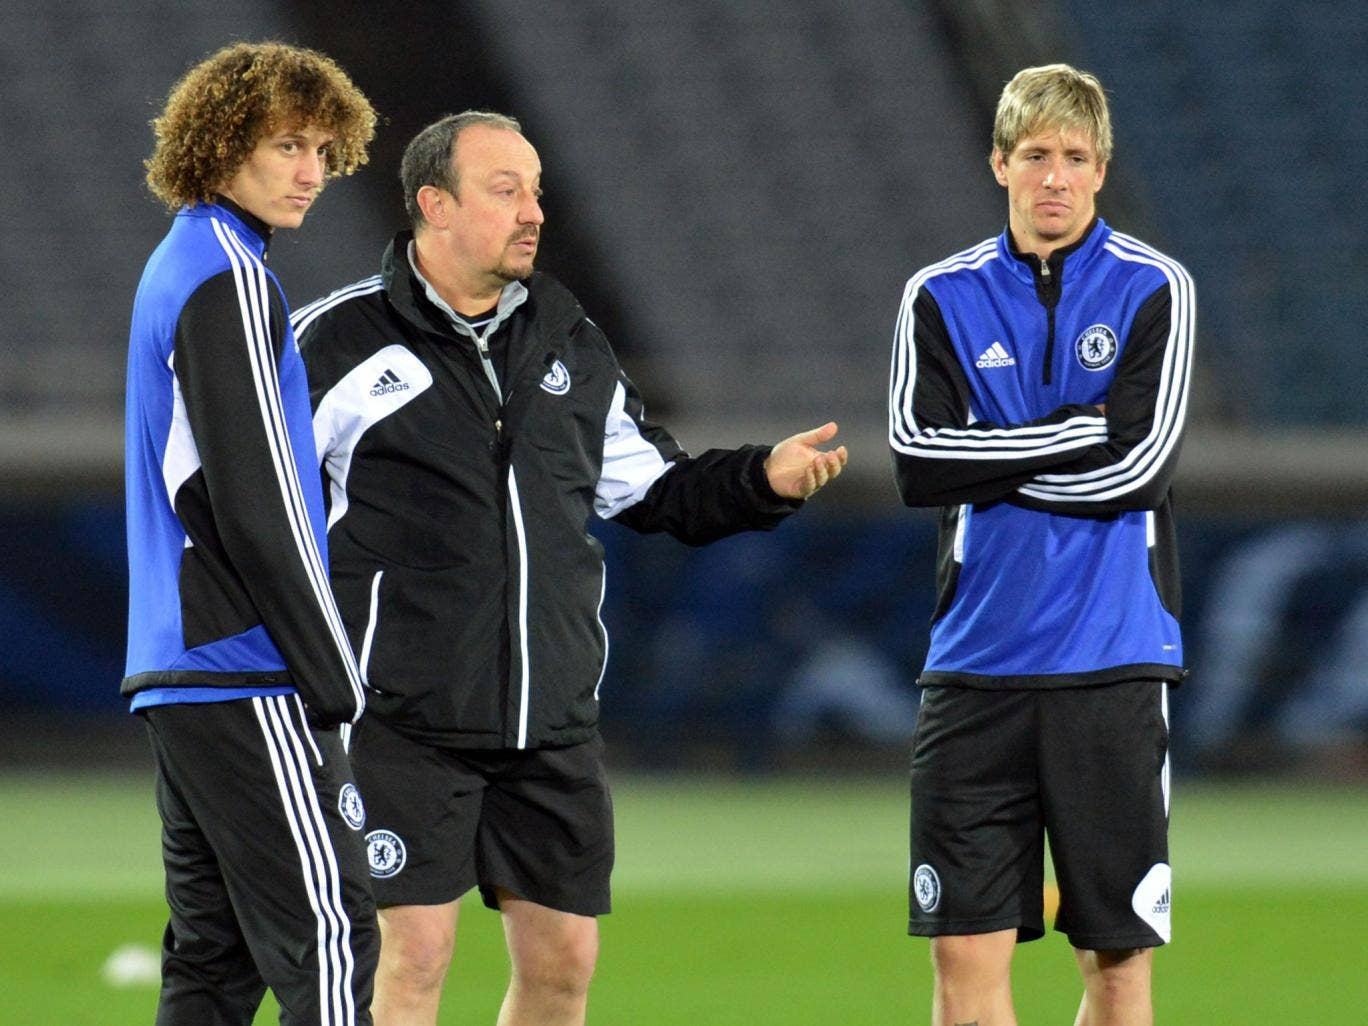 Pat on the back: Nevin rates David Luiz (left) highly as a central midfielder and reckons Fernando Torres (right) still has much to offer